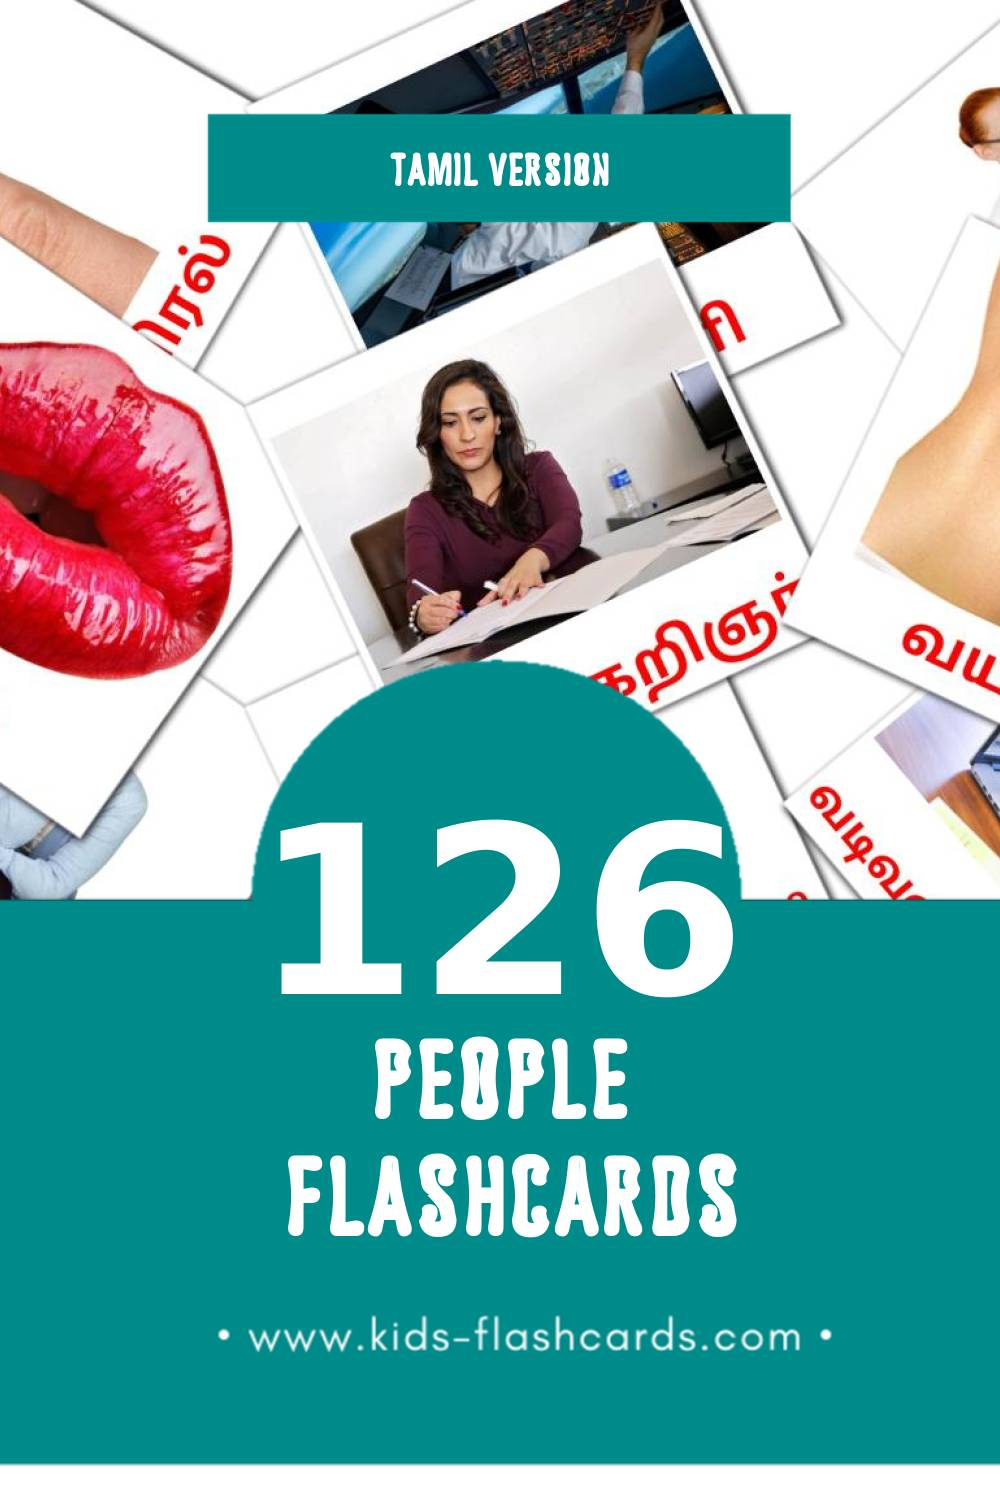 Visual People Flashcards for Toddlers (36 cards in Tamil)